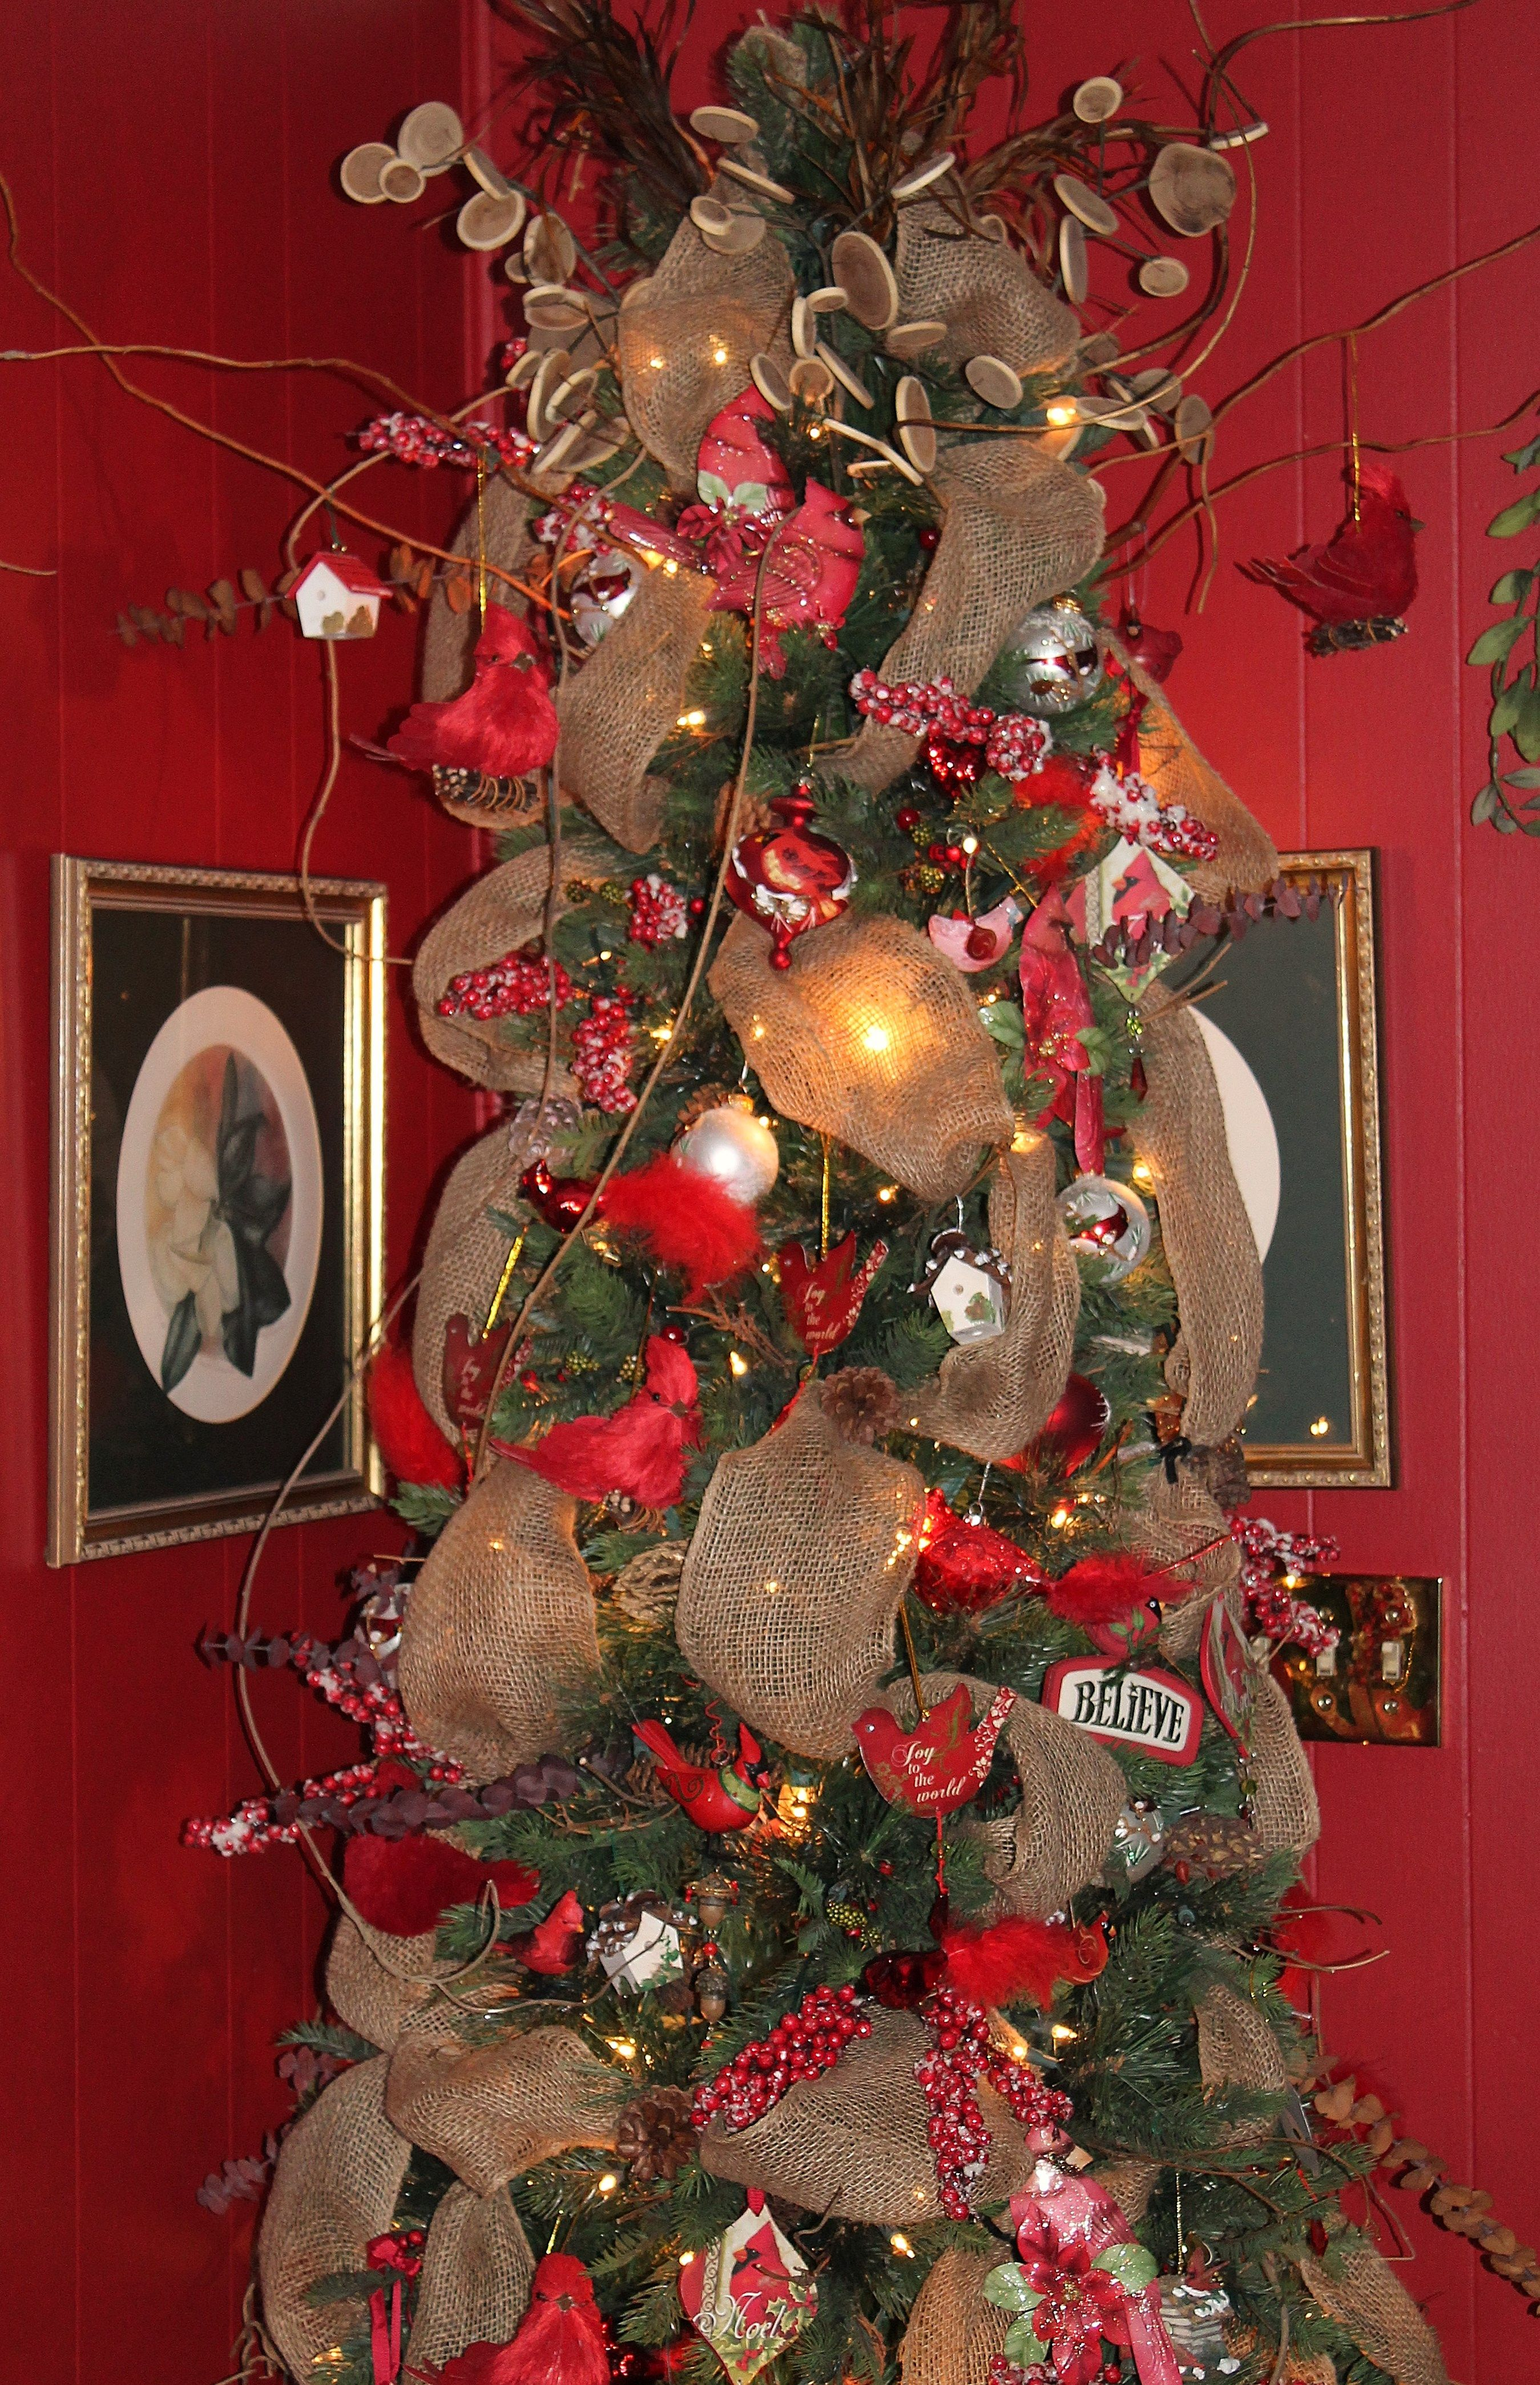 Tree In Memory Of My Mother And Father Simple Tree With Burlap Snow Covered Red Berries Wisteria Xmas Decorations Christmas Decorations Christmas Wreaths